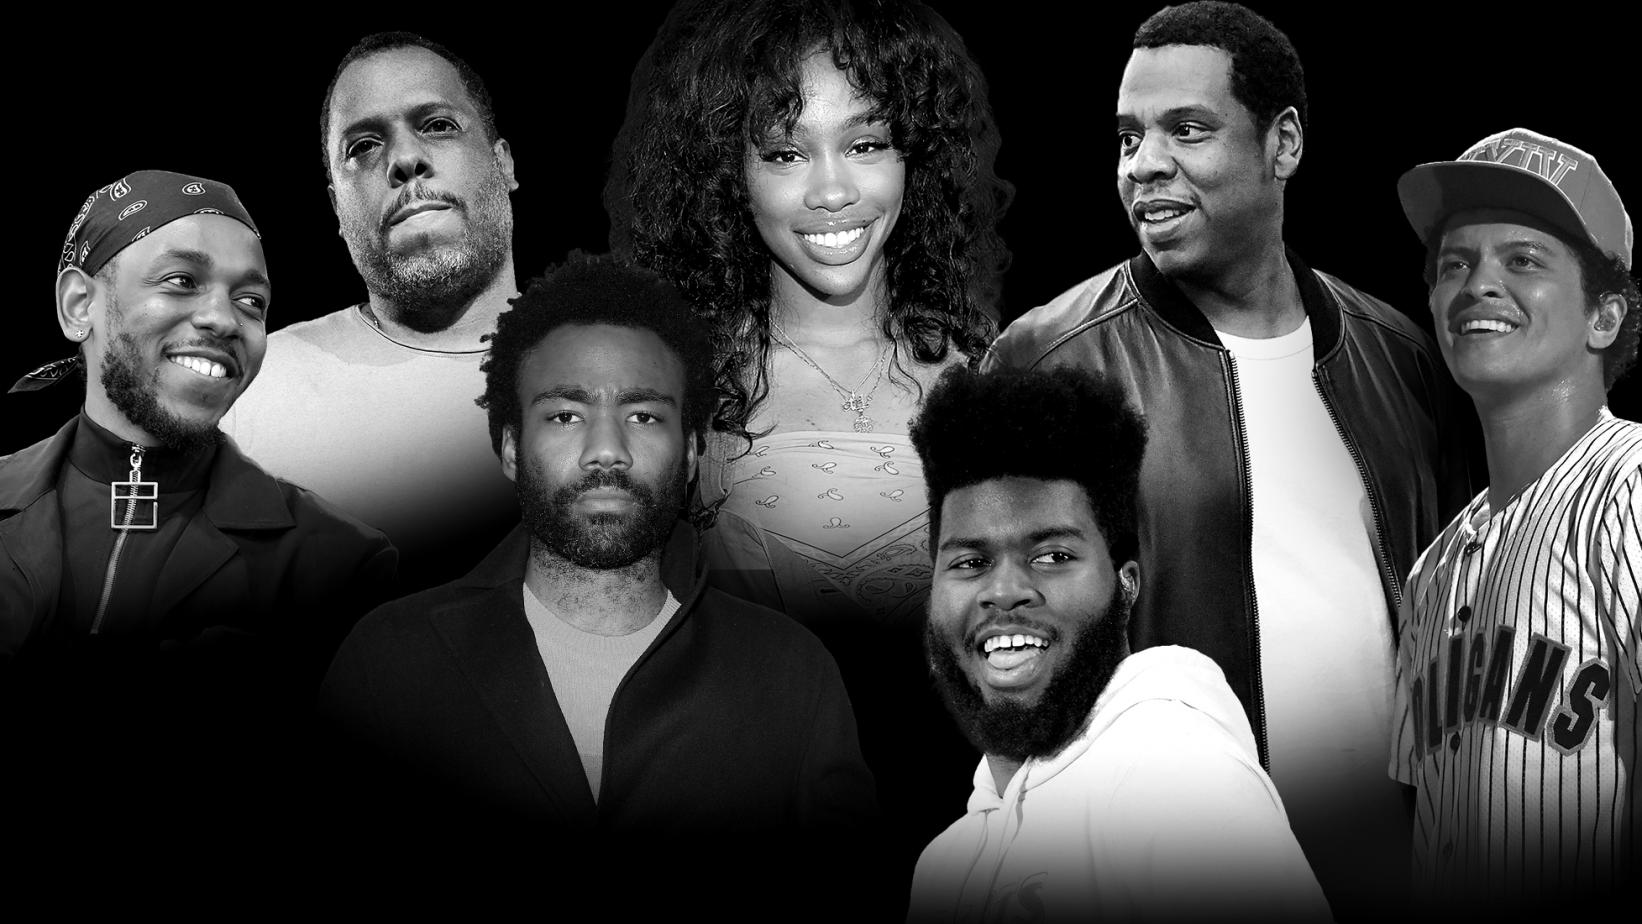 Nominees for the 60th Grammy awards highlight a change in diversity for award shows. Picture from Grammy.com